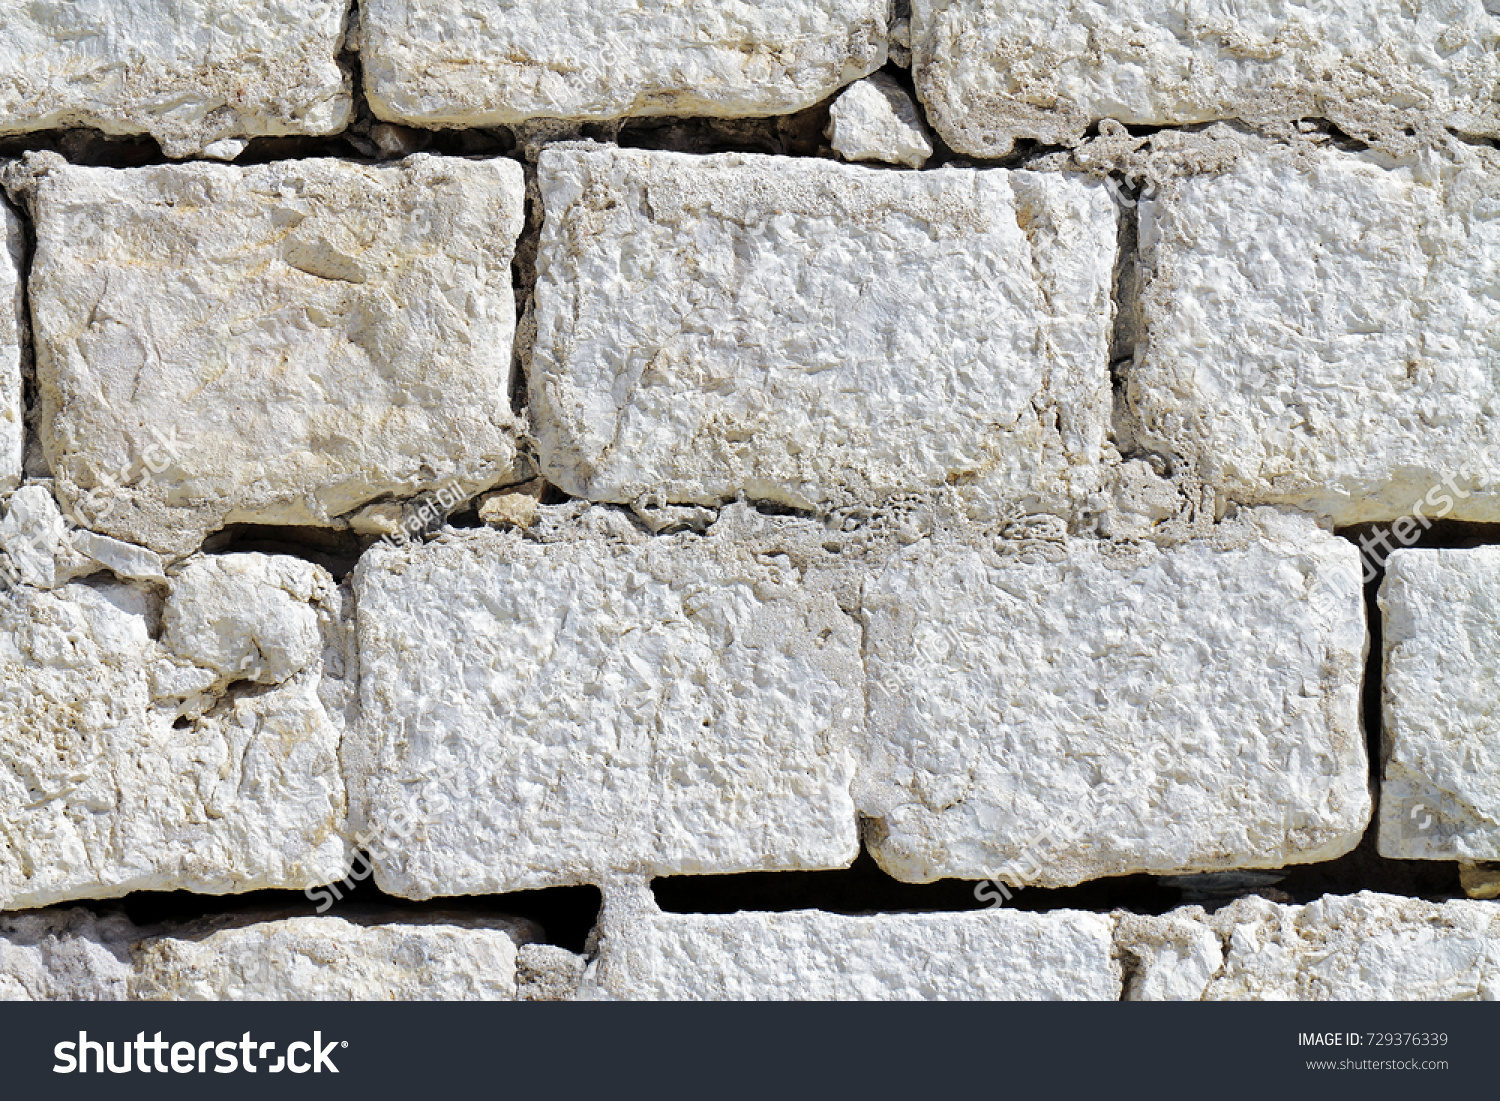 Background of stone wall #729376339